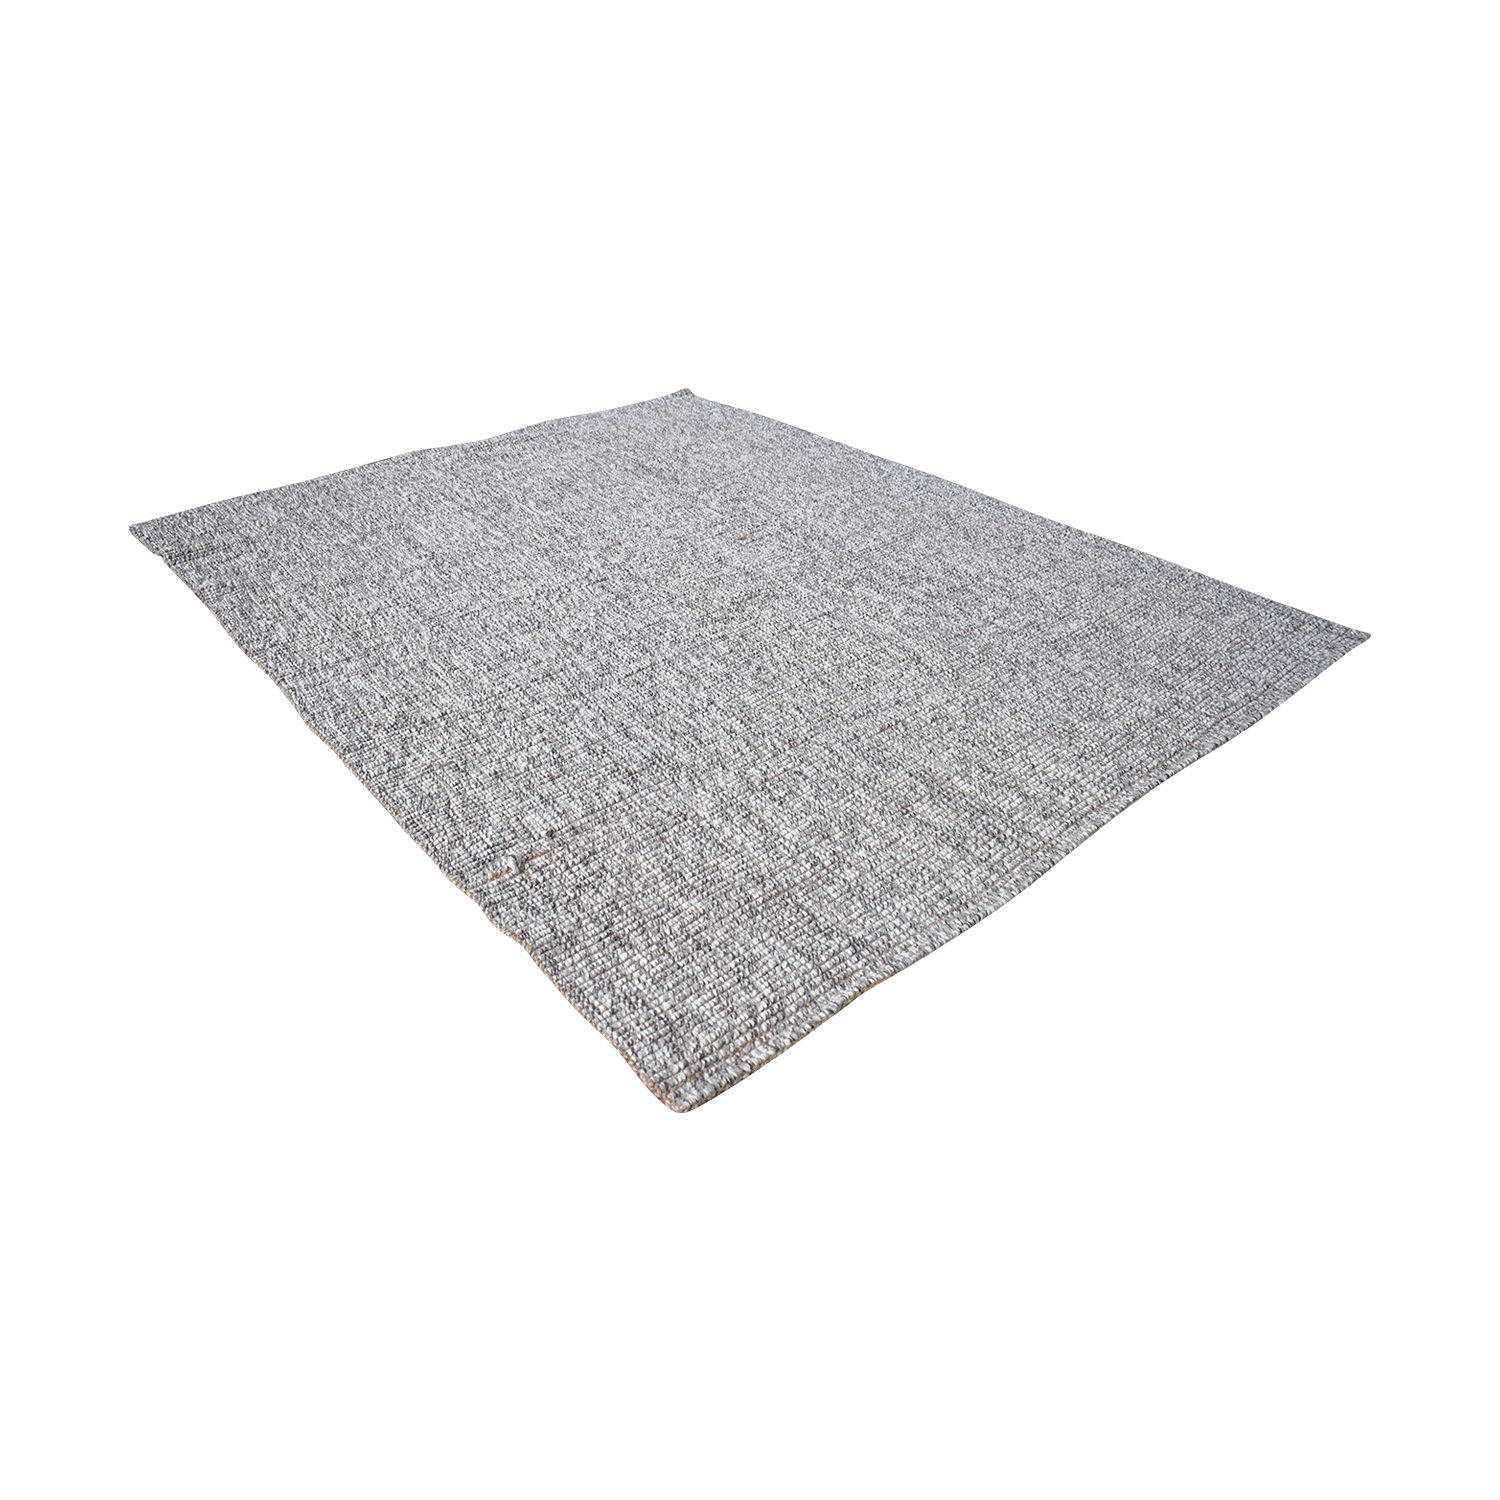 Crate & Barrel Crate & Barrel Grey 5x8 Popcorn Rug